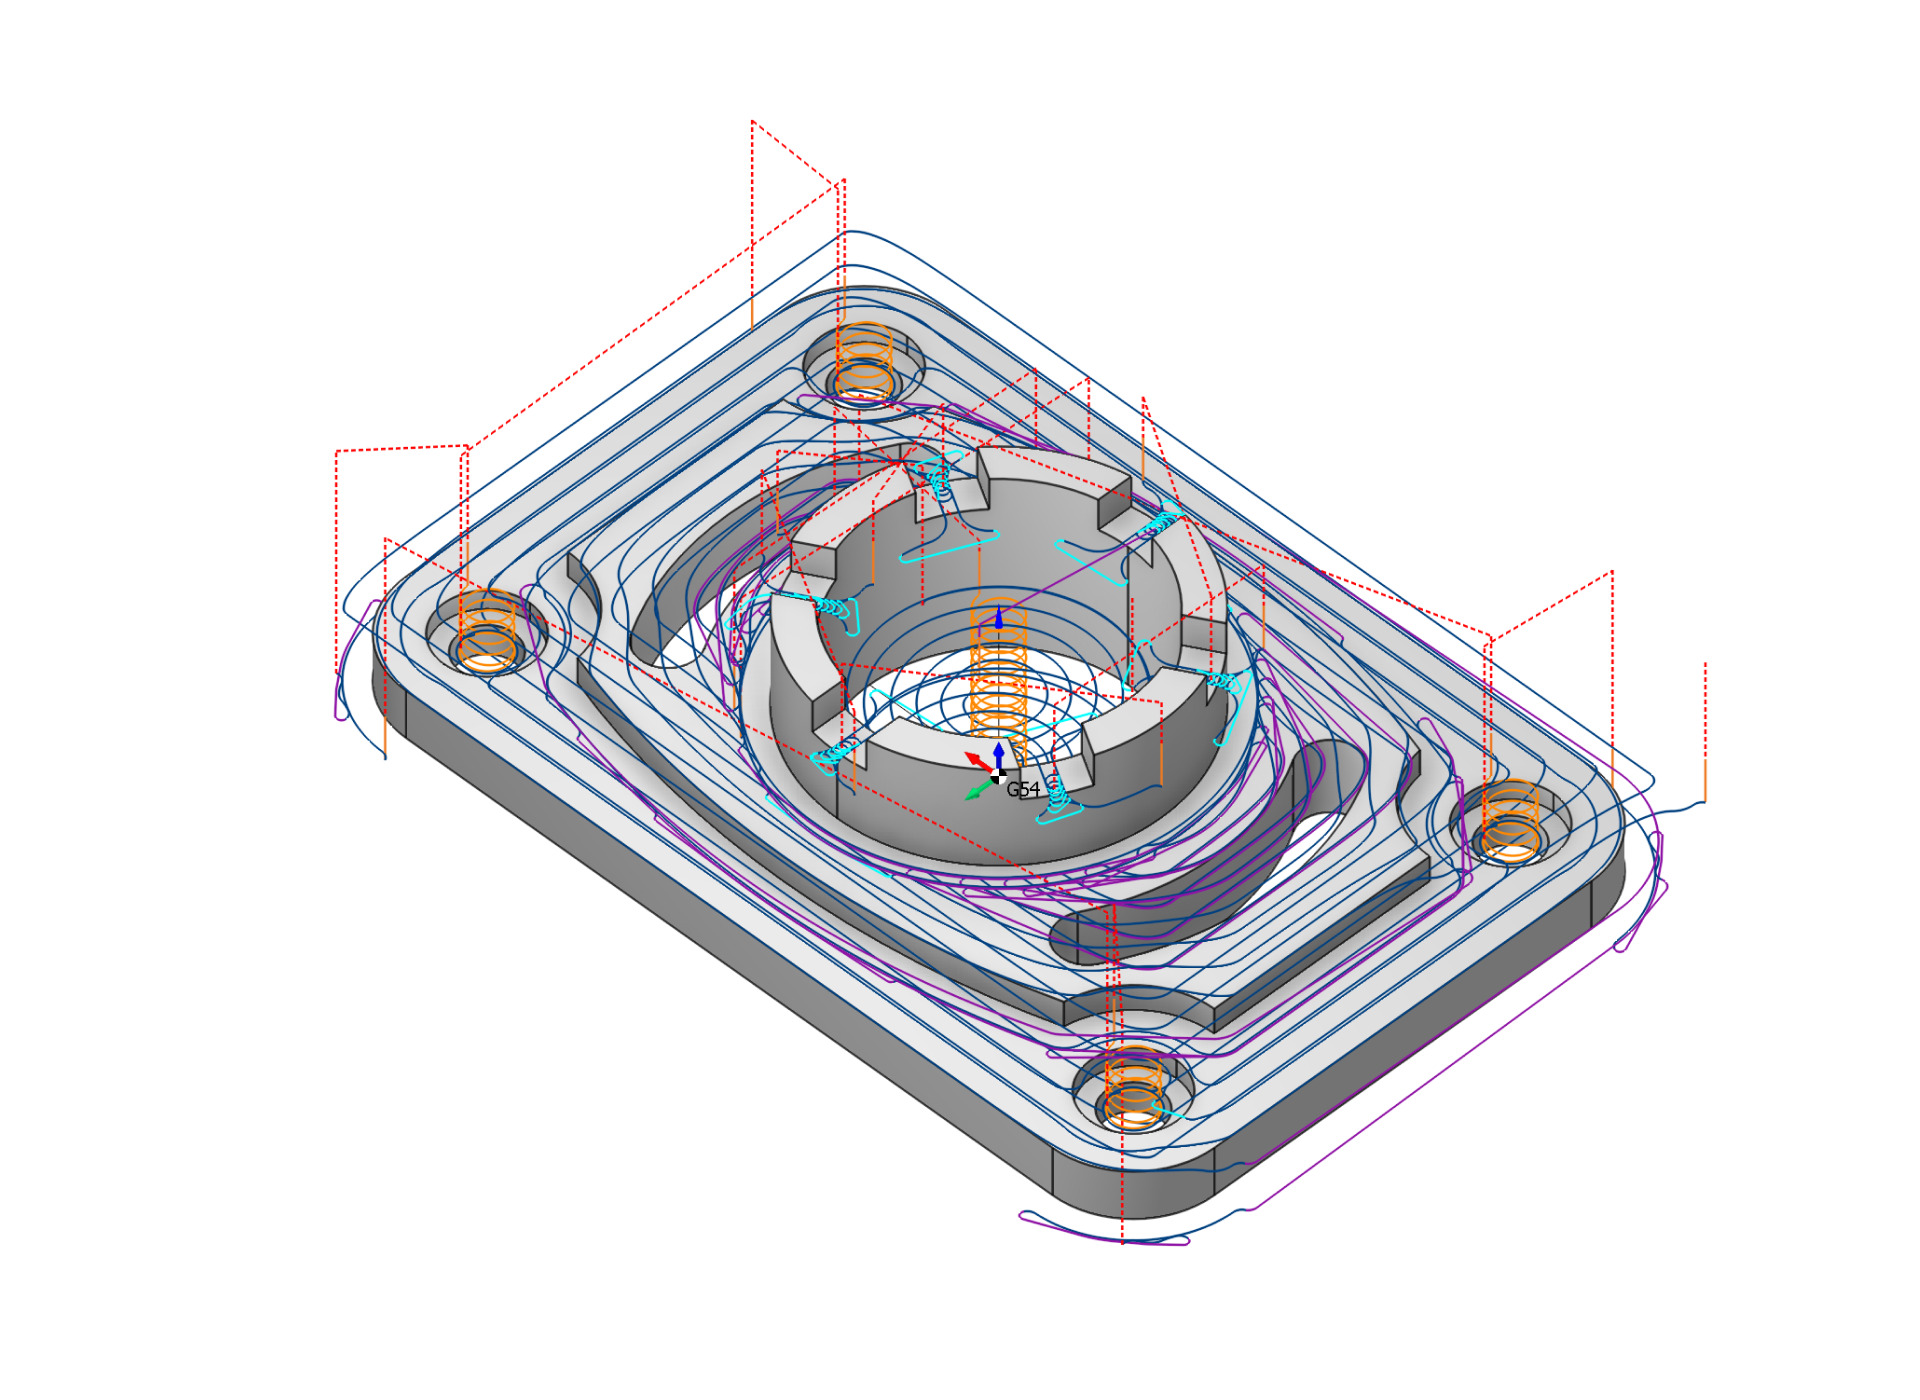 Calculated toolpath